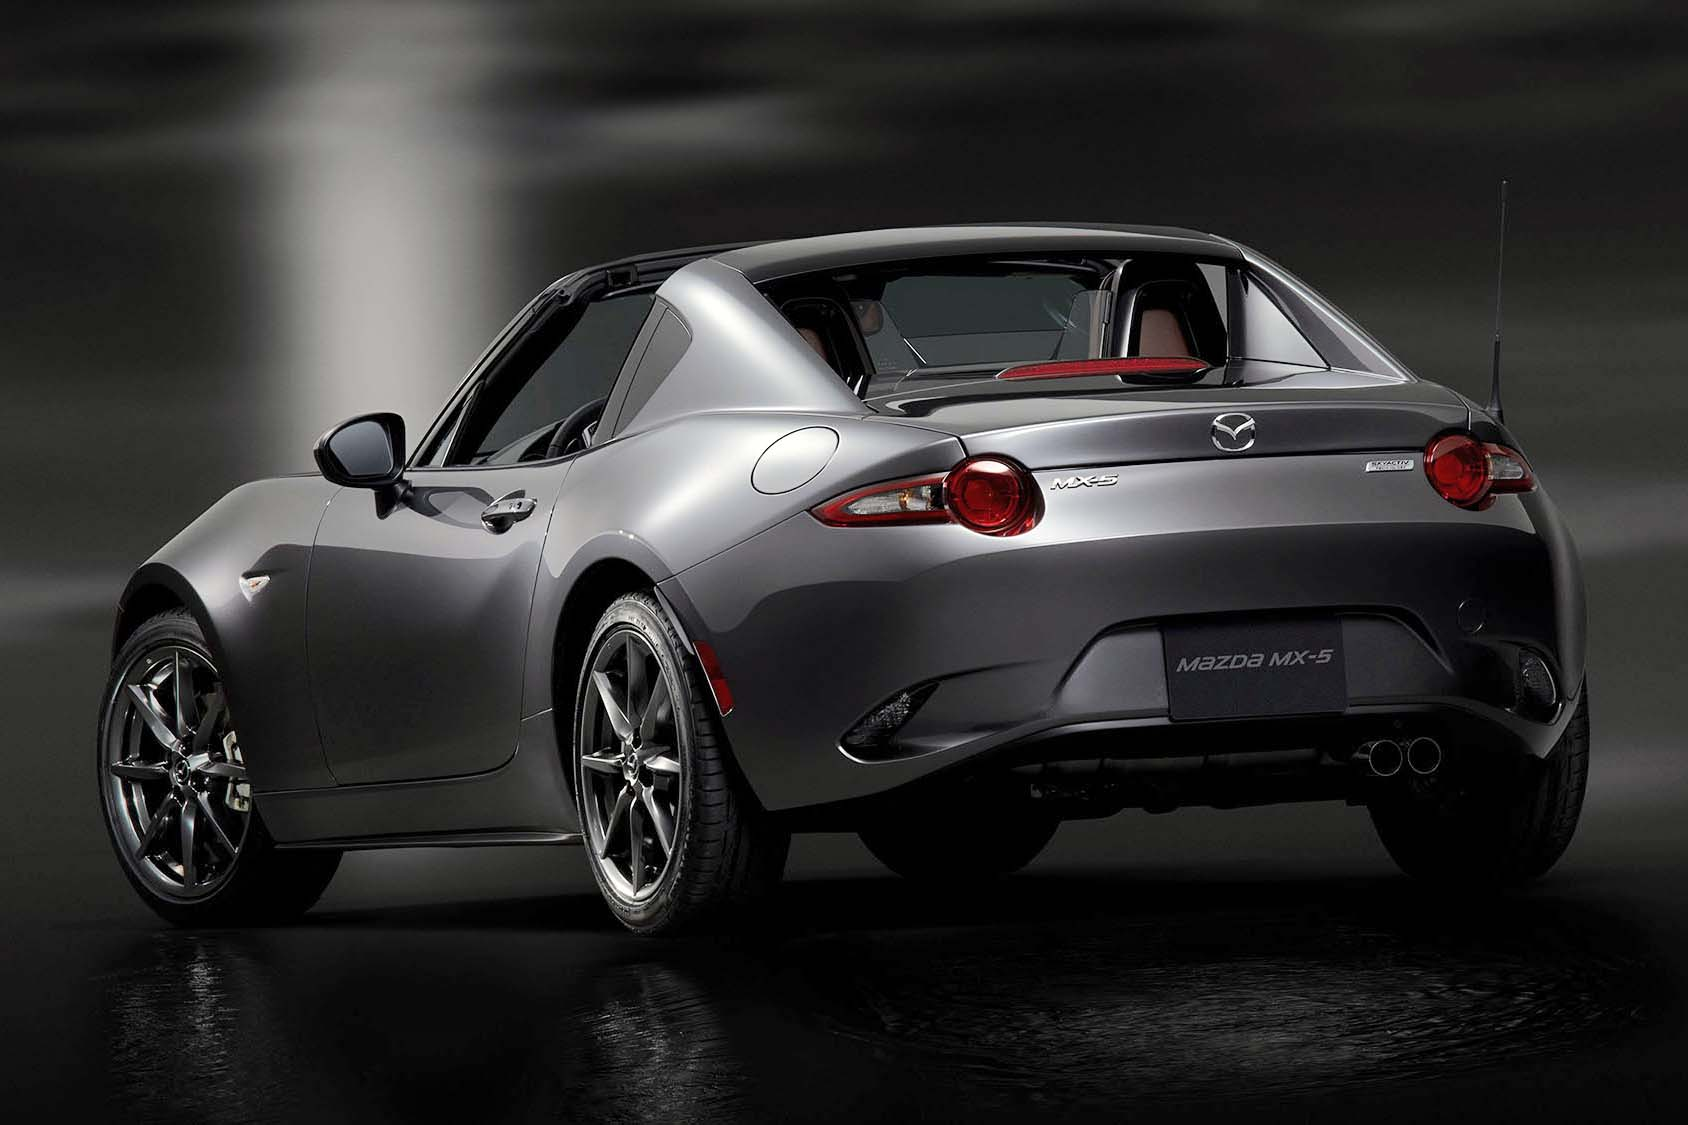 Images Of A Bentley Car Wallpaper Fastback Mazda Mx 5 Rf Stuns In New York Autos Ca